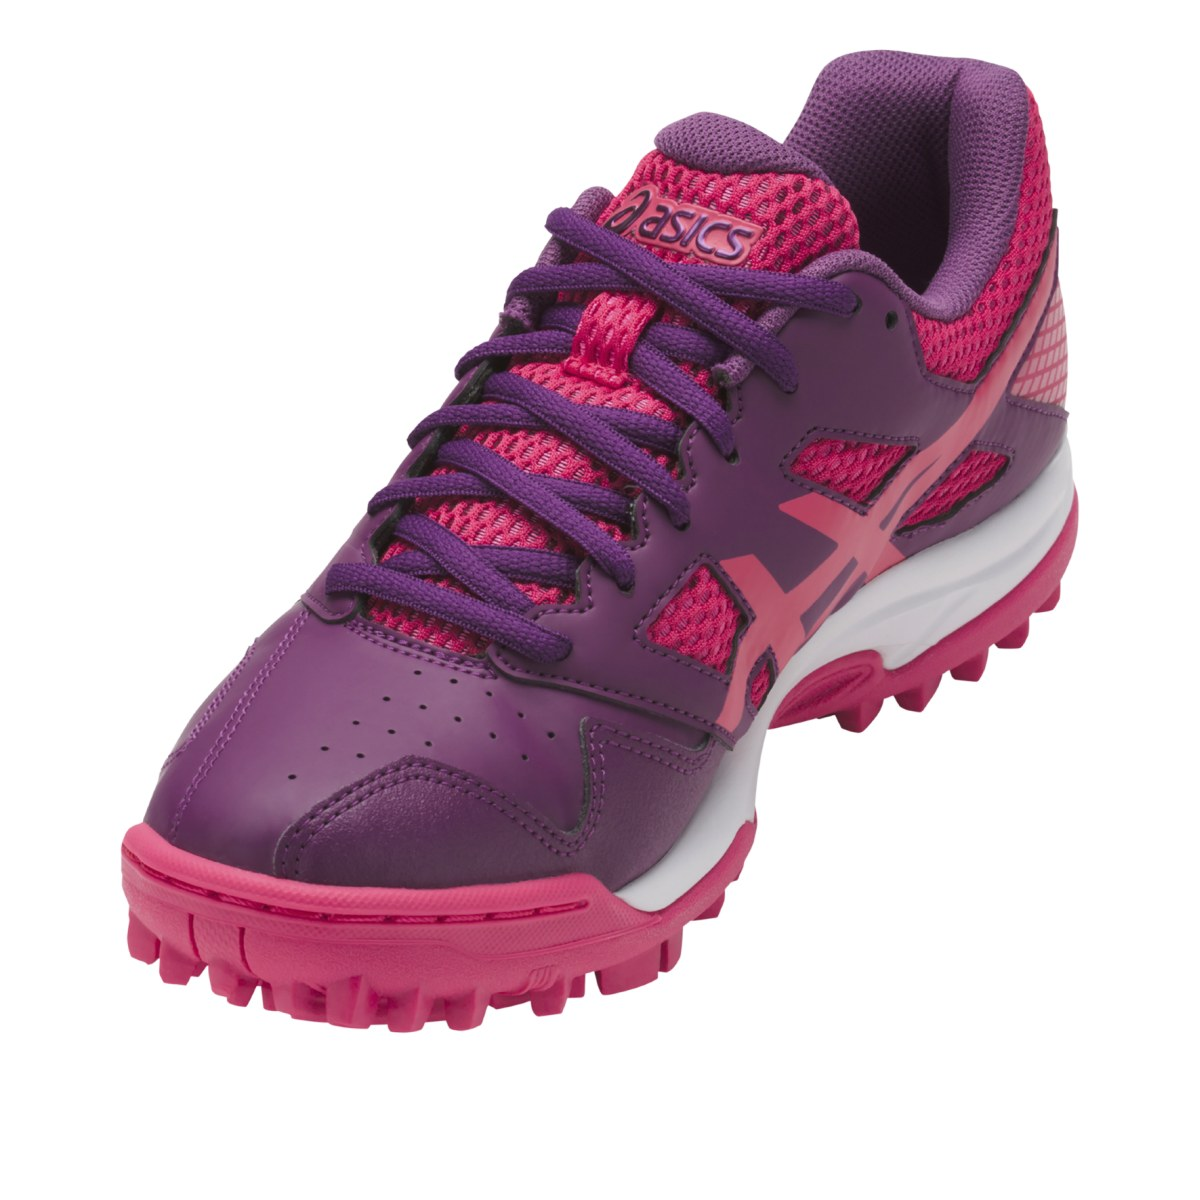 asics hockeyschoenen intersport